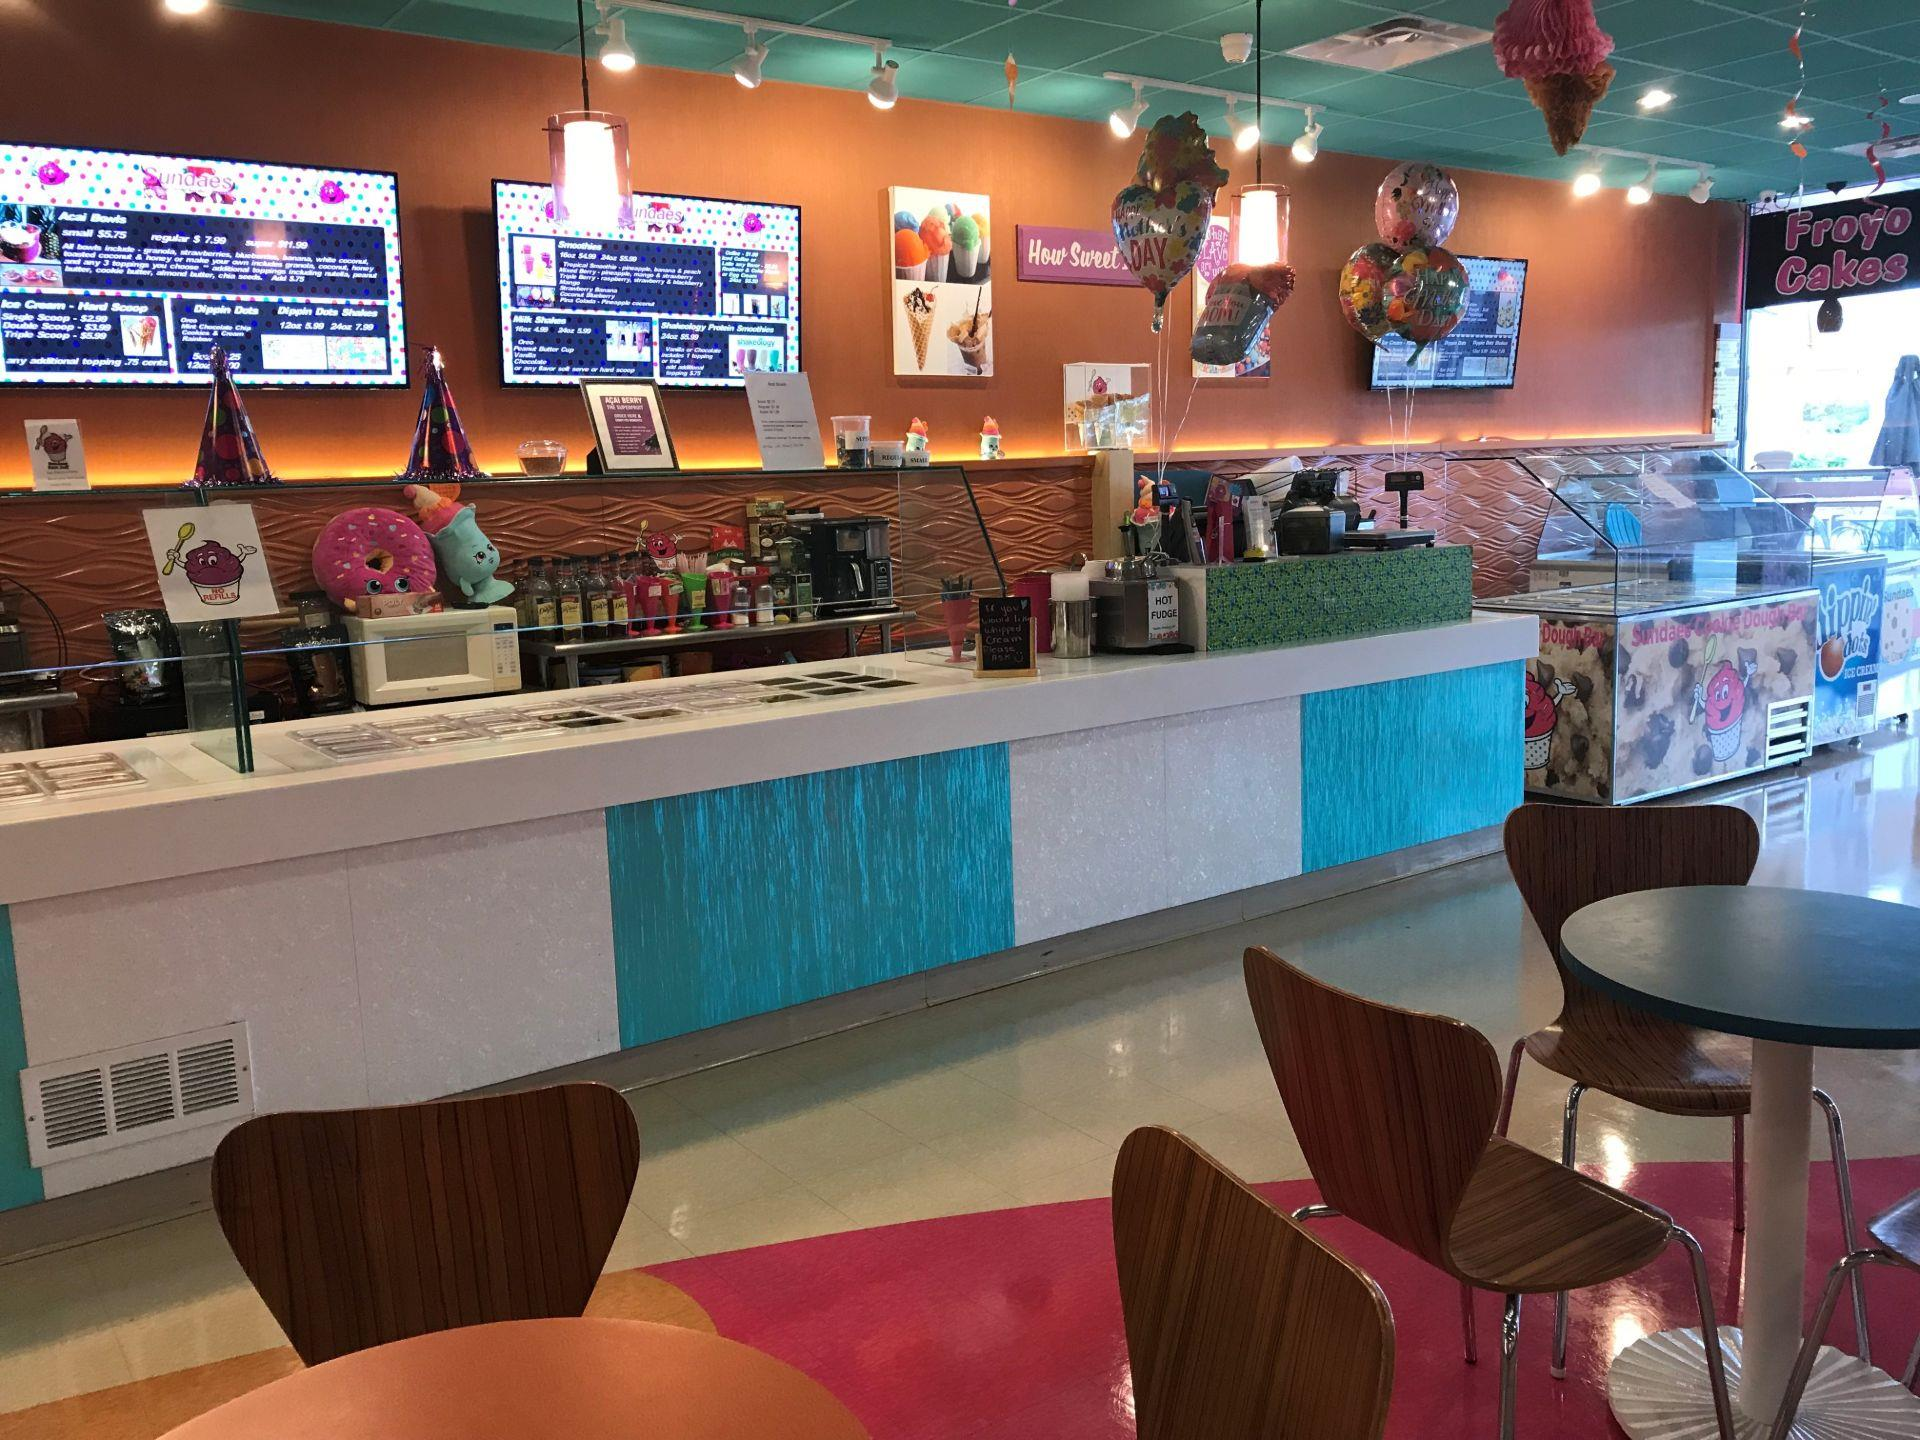 Interior of a self-serve ice cream shop with tables and chairs and a counter-top with containers of assorted ice cream toppings and a cash register